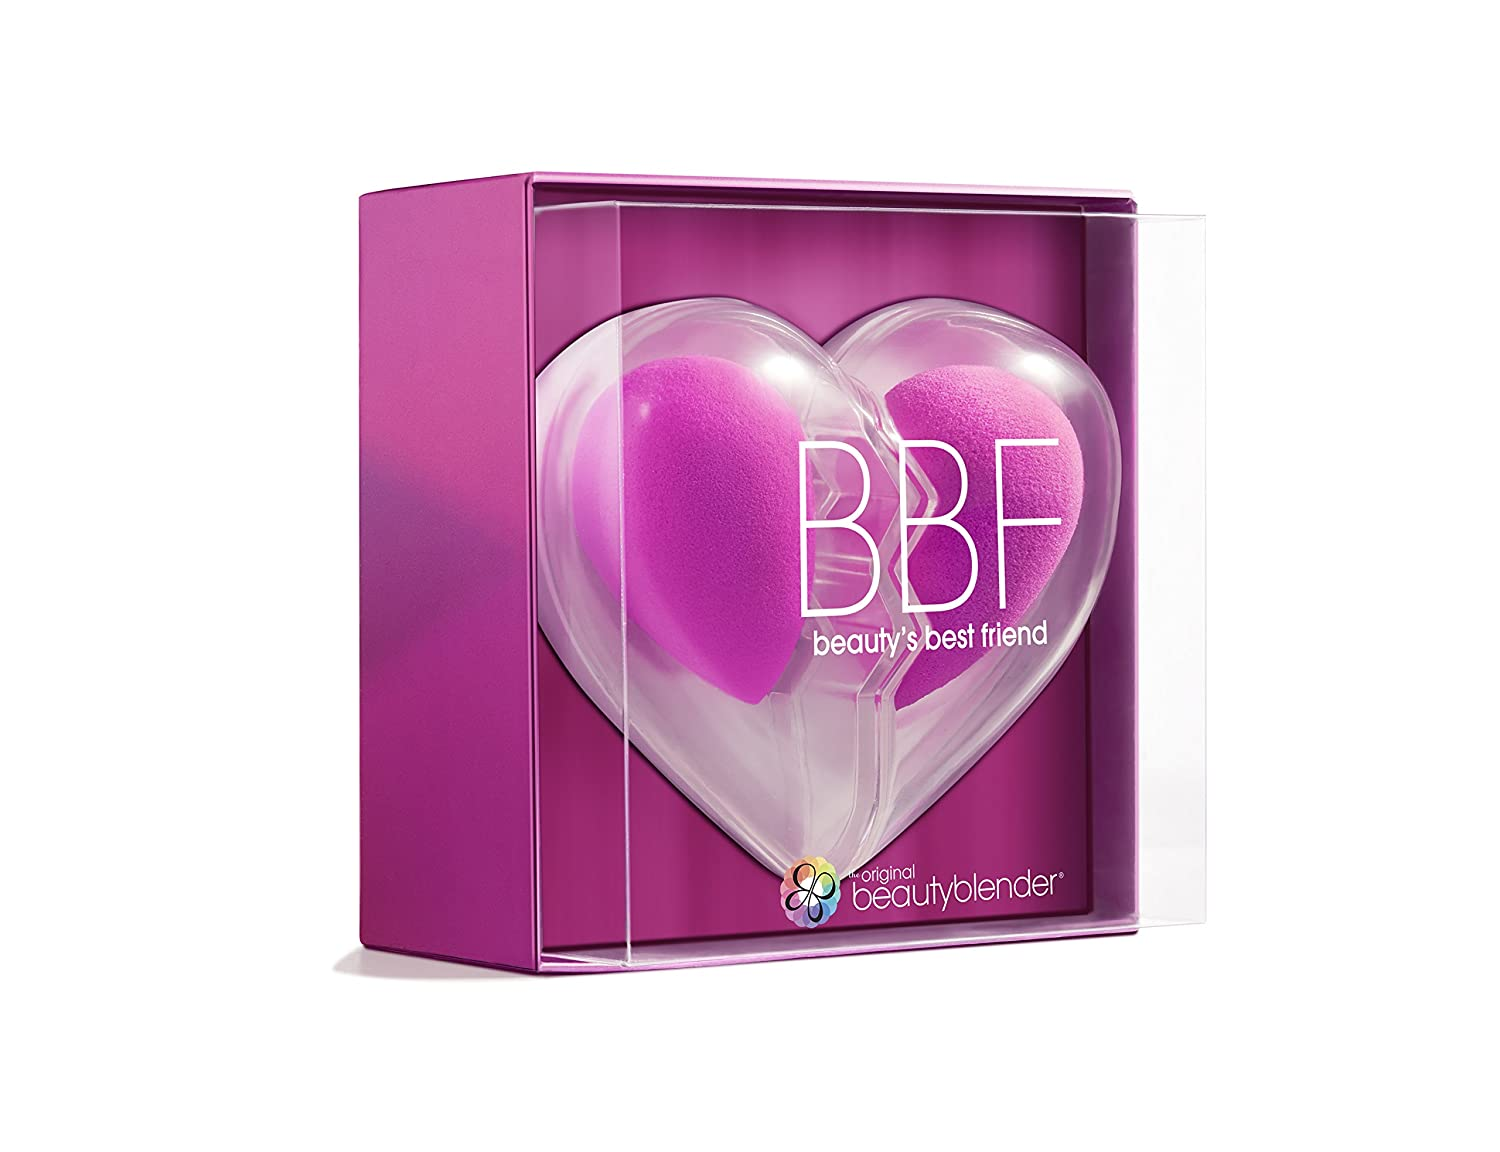 beautyblender BBF Heart, Two Original Makeup Sponges for Foundations, Powders & Creams HealthCenter 20819